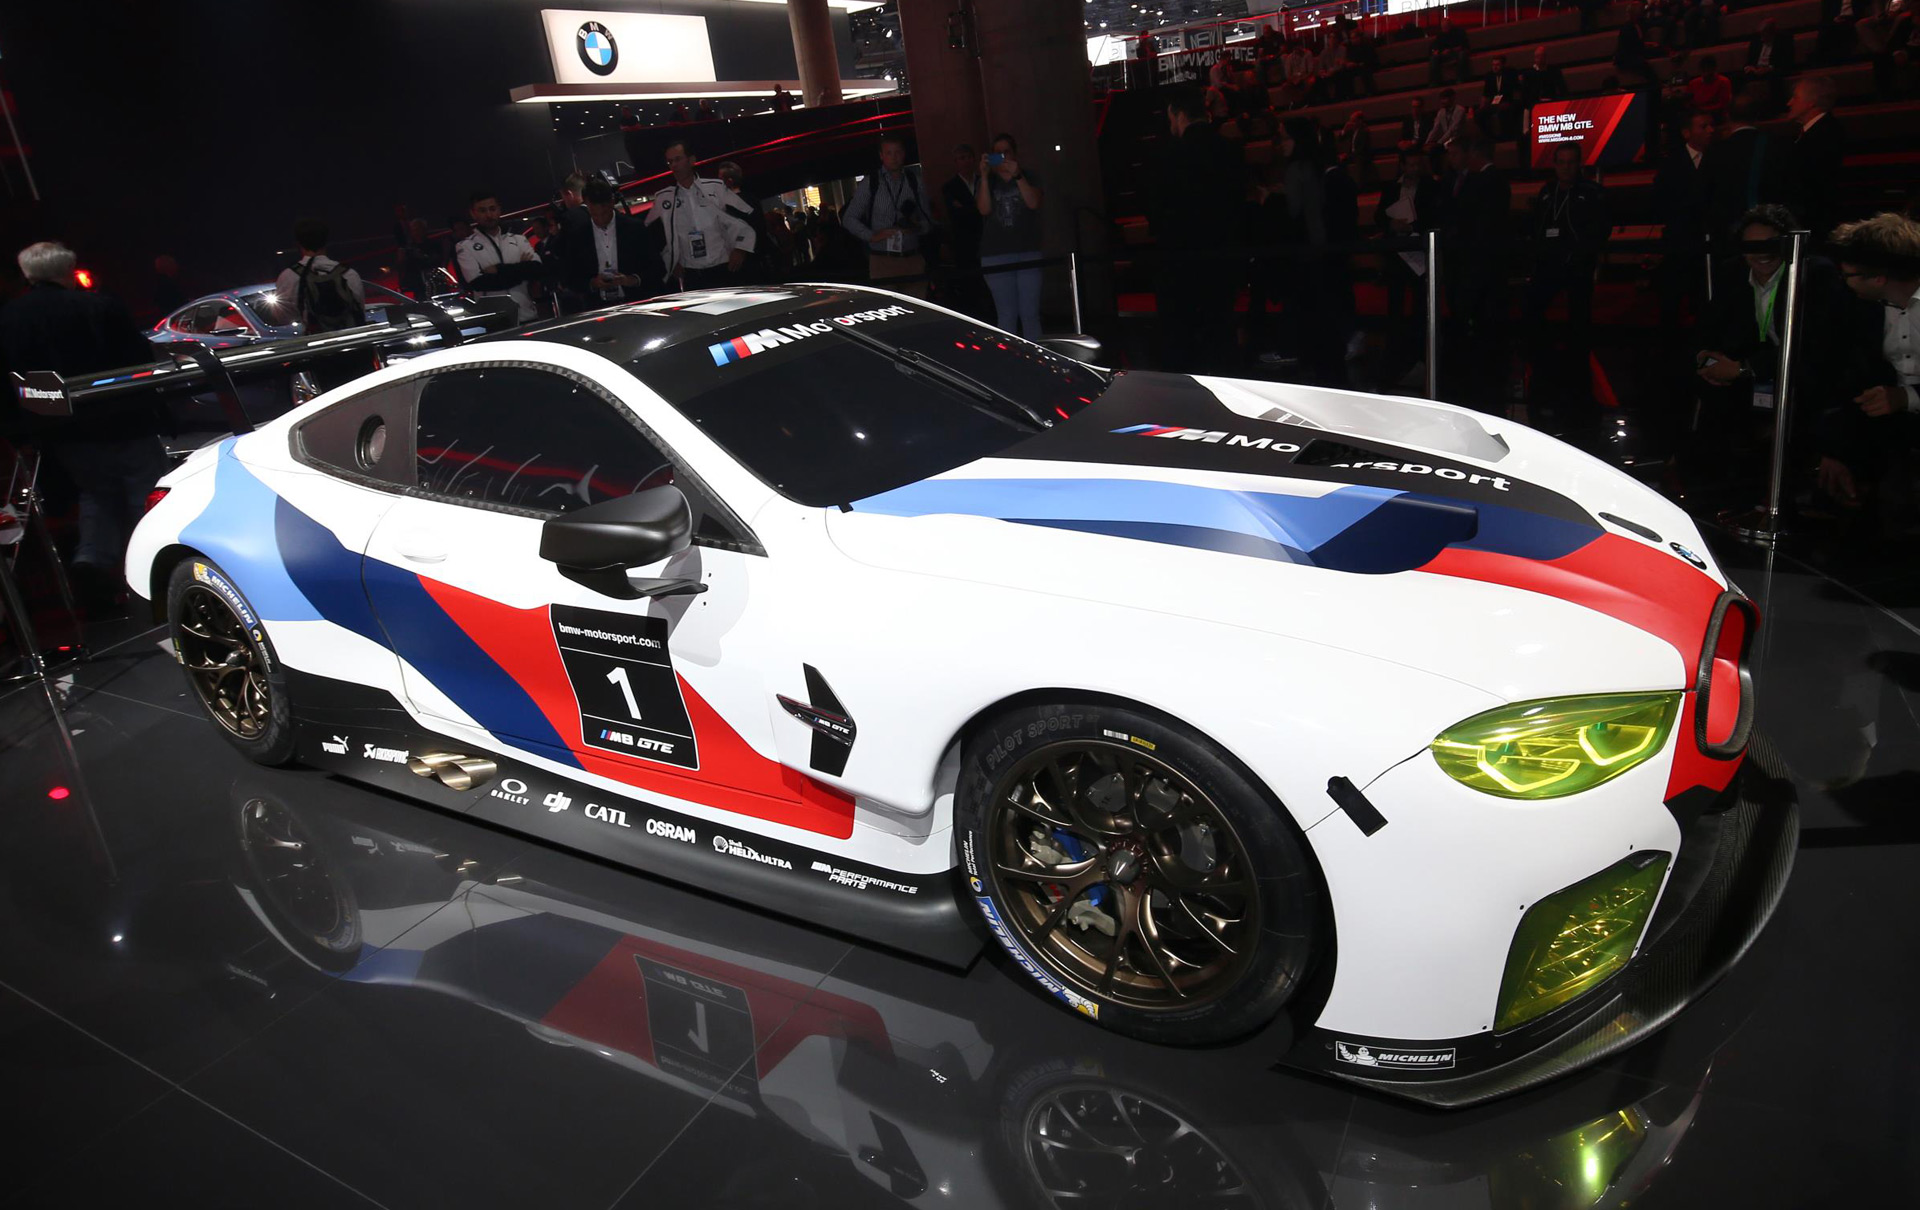 bmw m8 gte racecar debuts in frankfurt ready to battle at. Black Bedroom Furniture Sets. Home Design Ideas